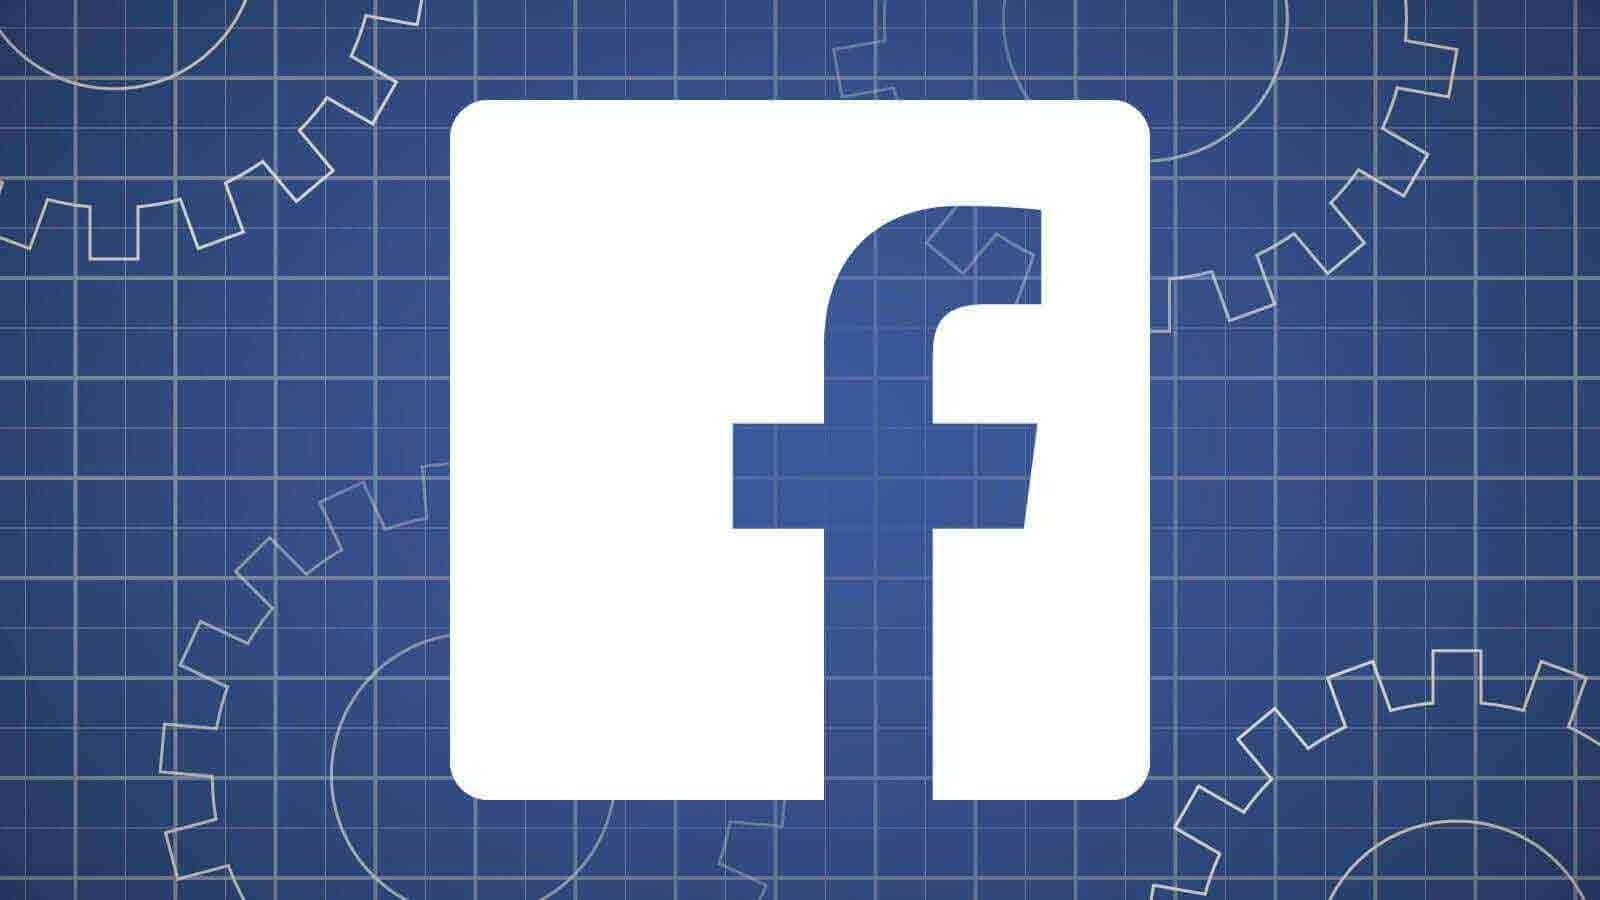 Create A Facebook App_Facebook Creation With A Calendar Icon